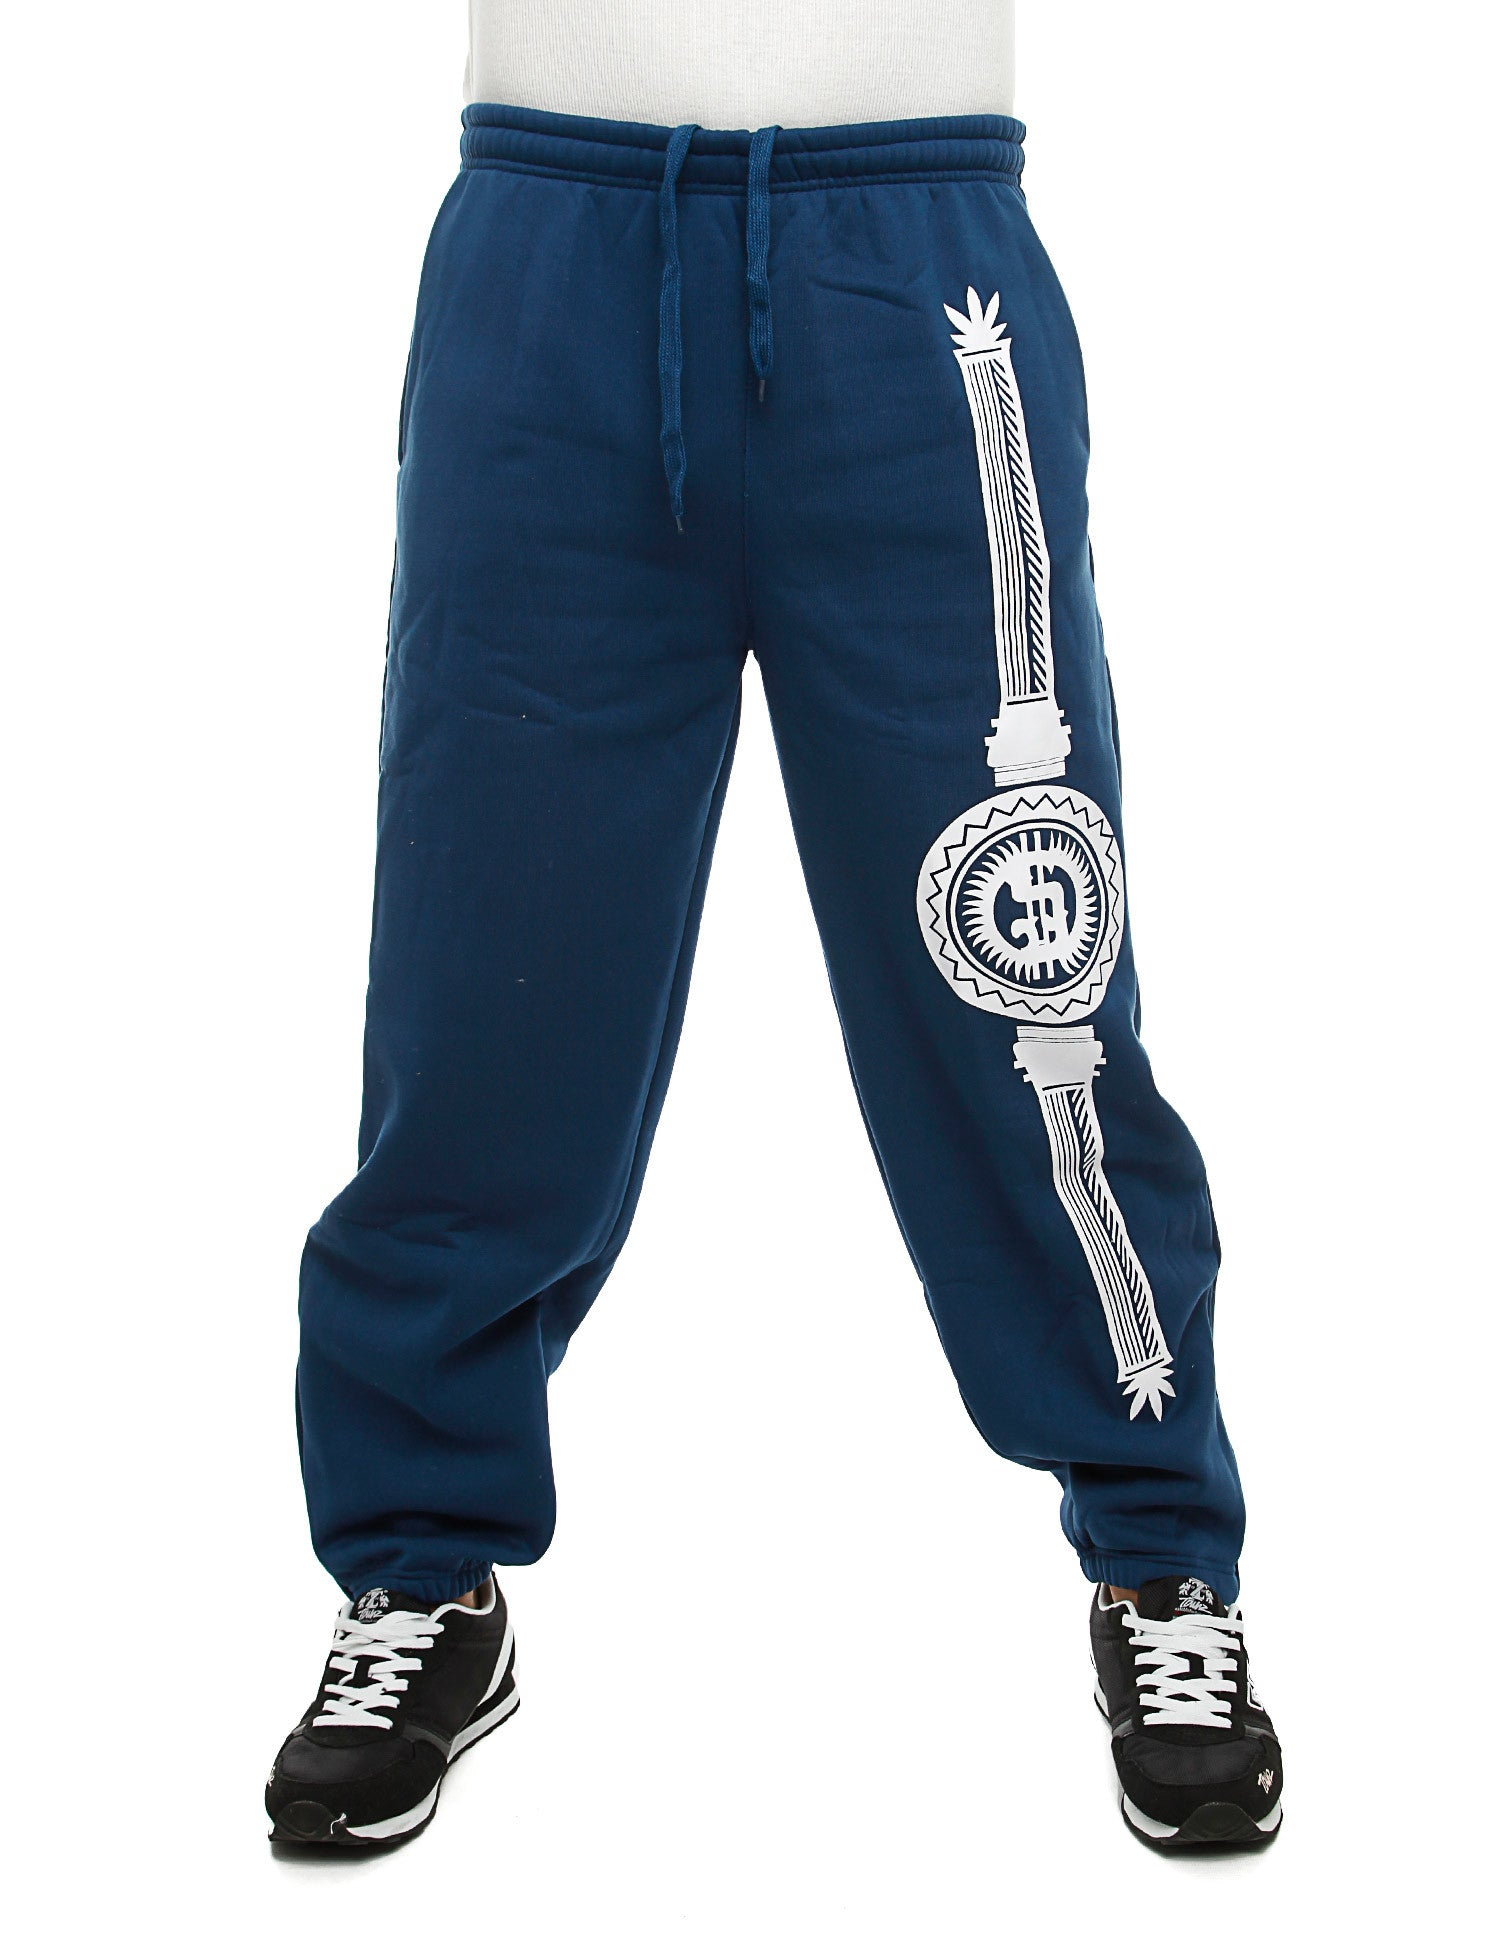 YLD Sweatpant SP-358D Blue